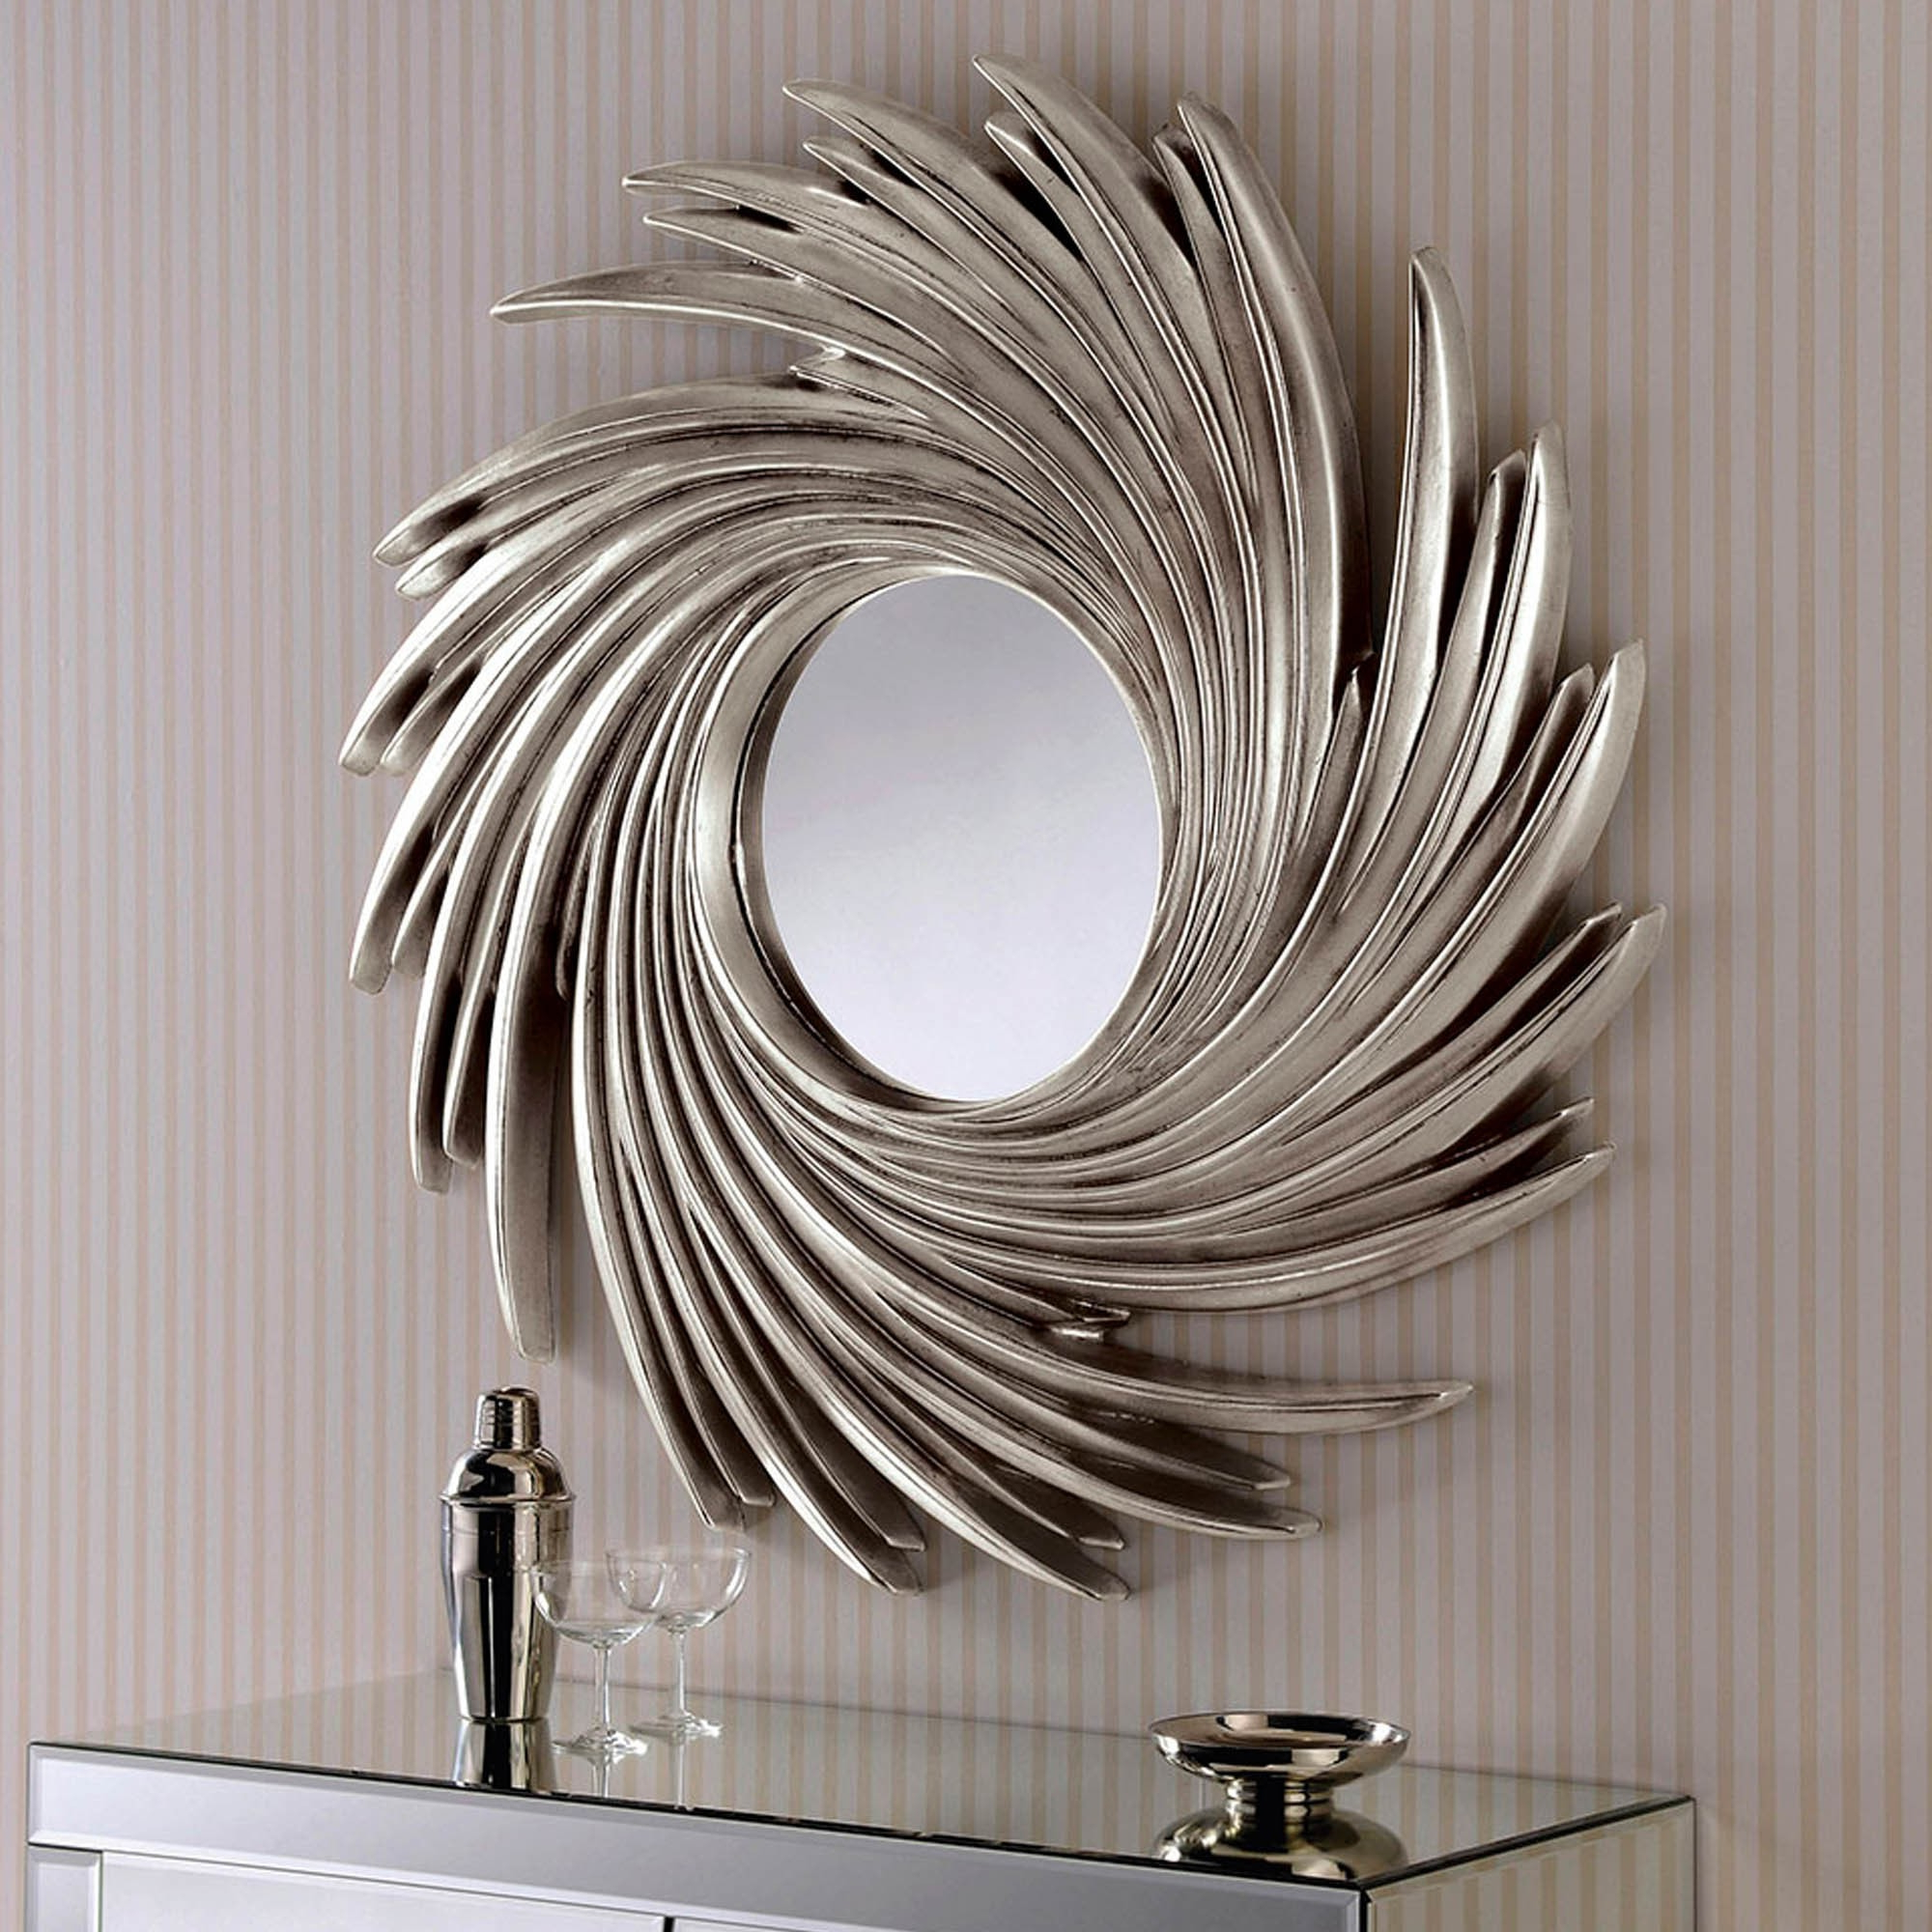 Contemporary Silver Swirl Wall Mirror Pertaining To 2019 Swirl Wall Mirrors (Gallery 6 of 20)